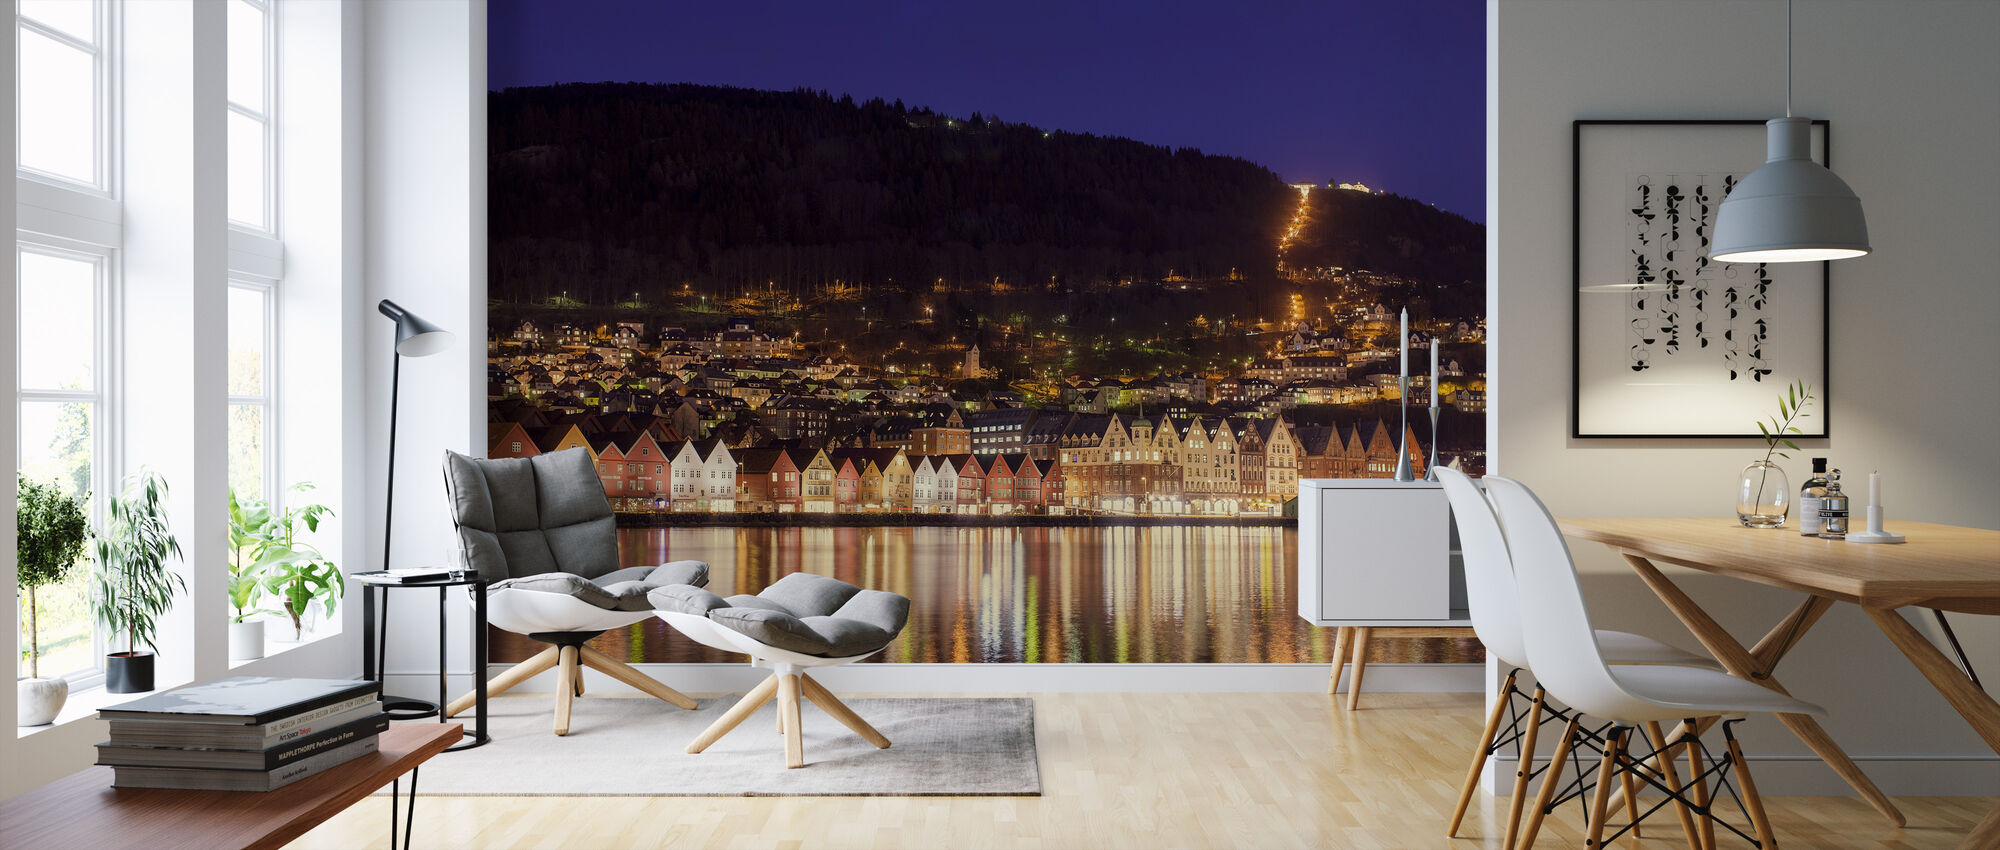 Colorful Houses of Bergen, Norway - Wallpaper - Living Room